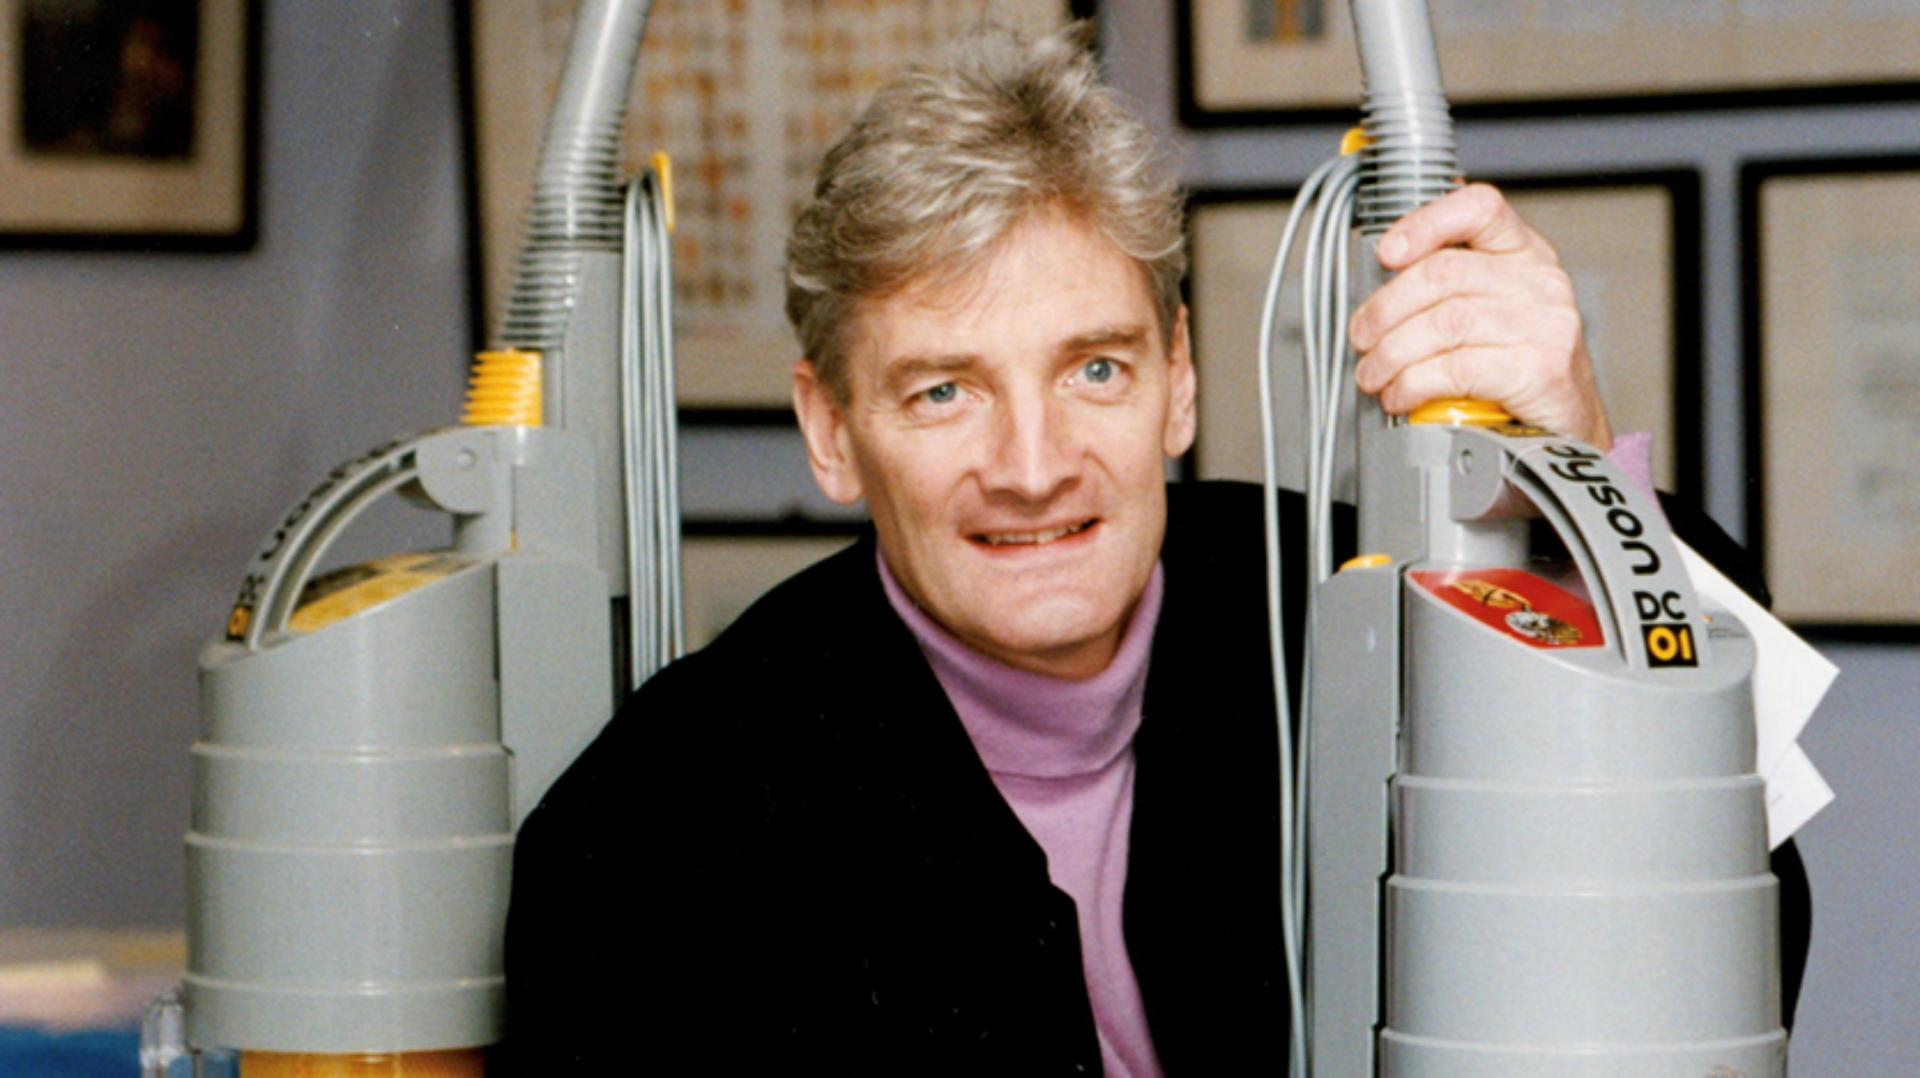 James Dyson pictured with two DC01s